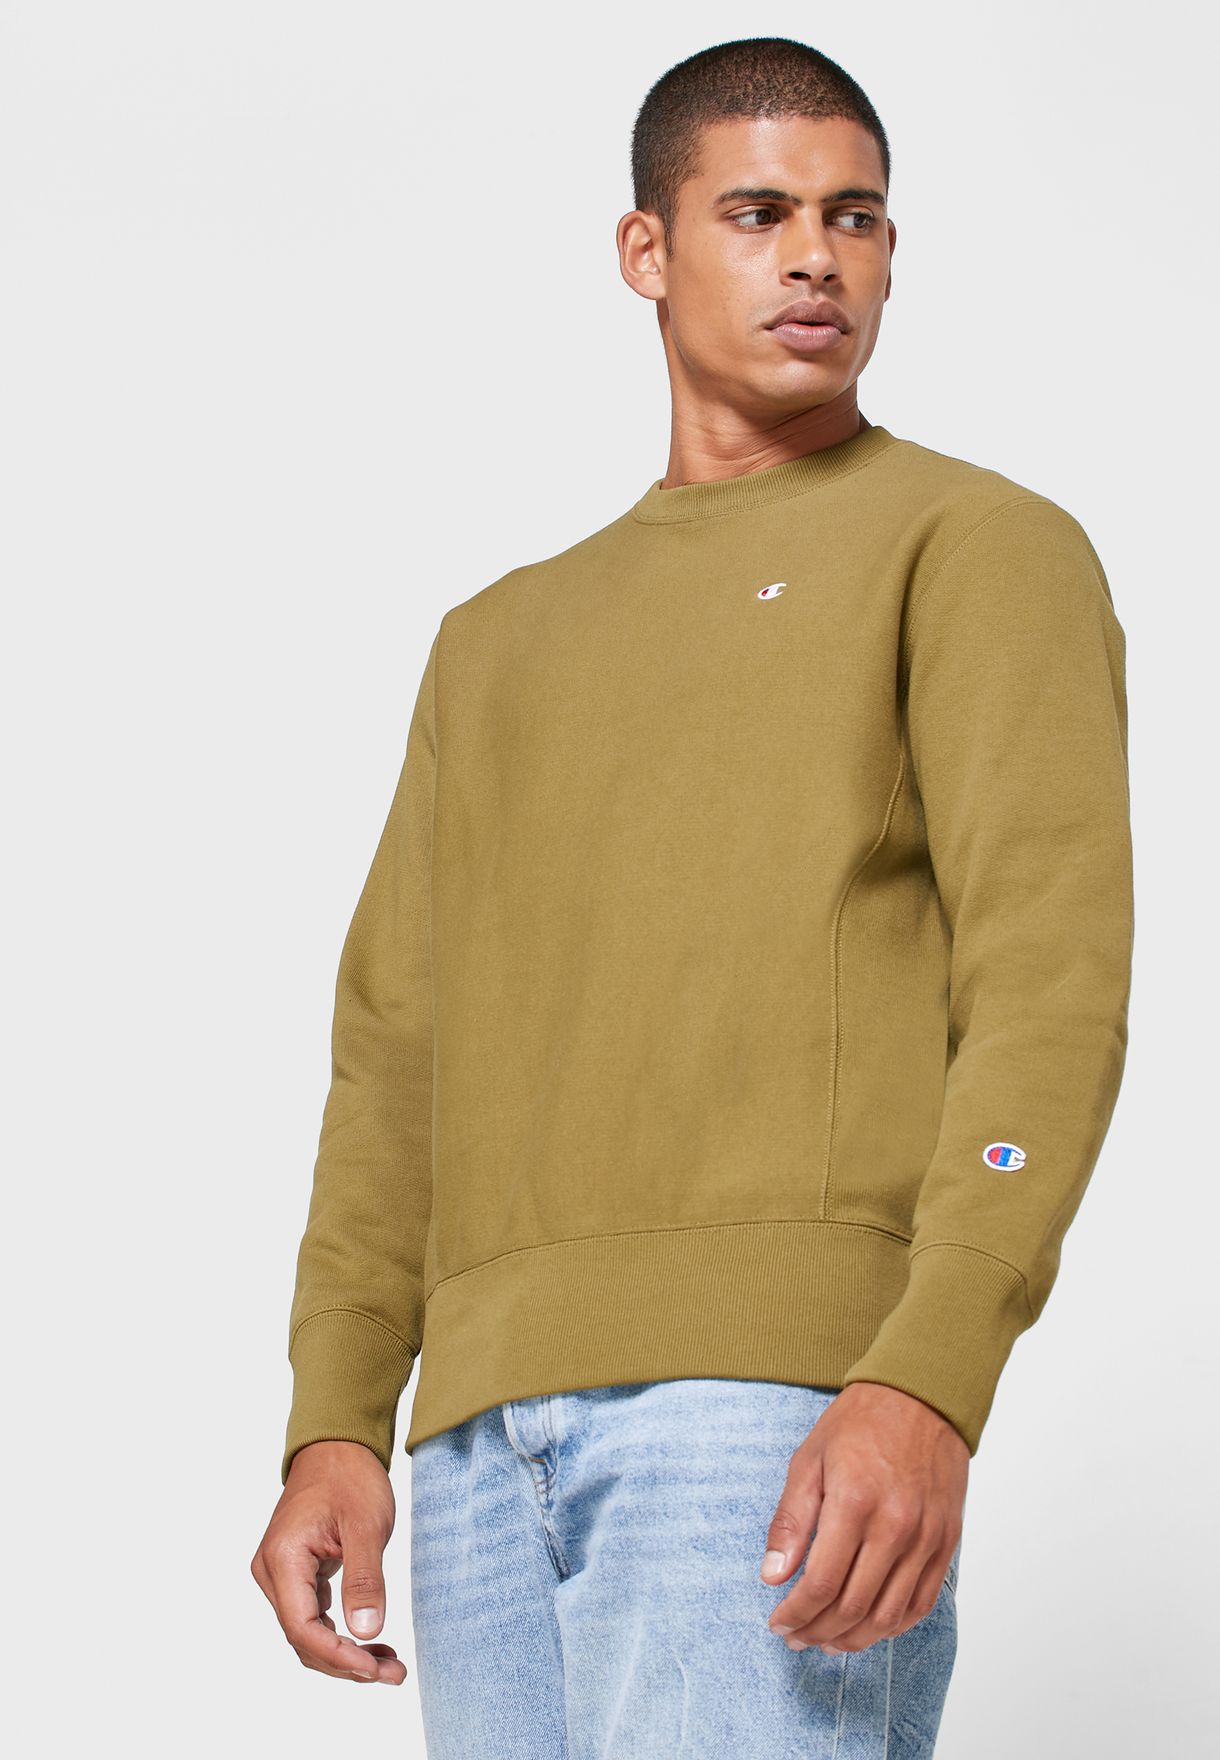 Reverse Weave Fleece Sweatshirt